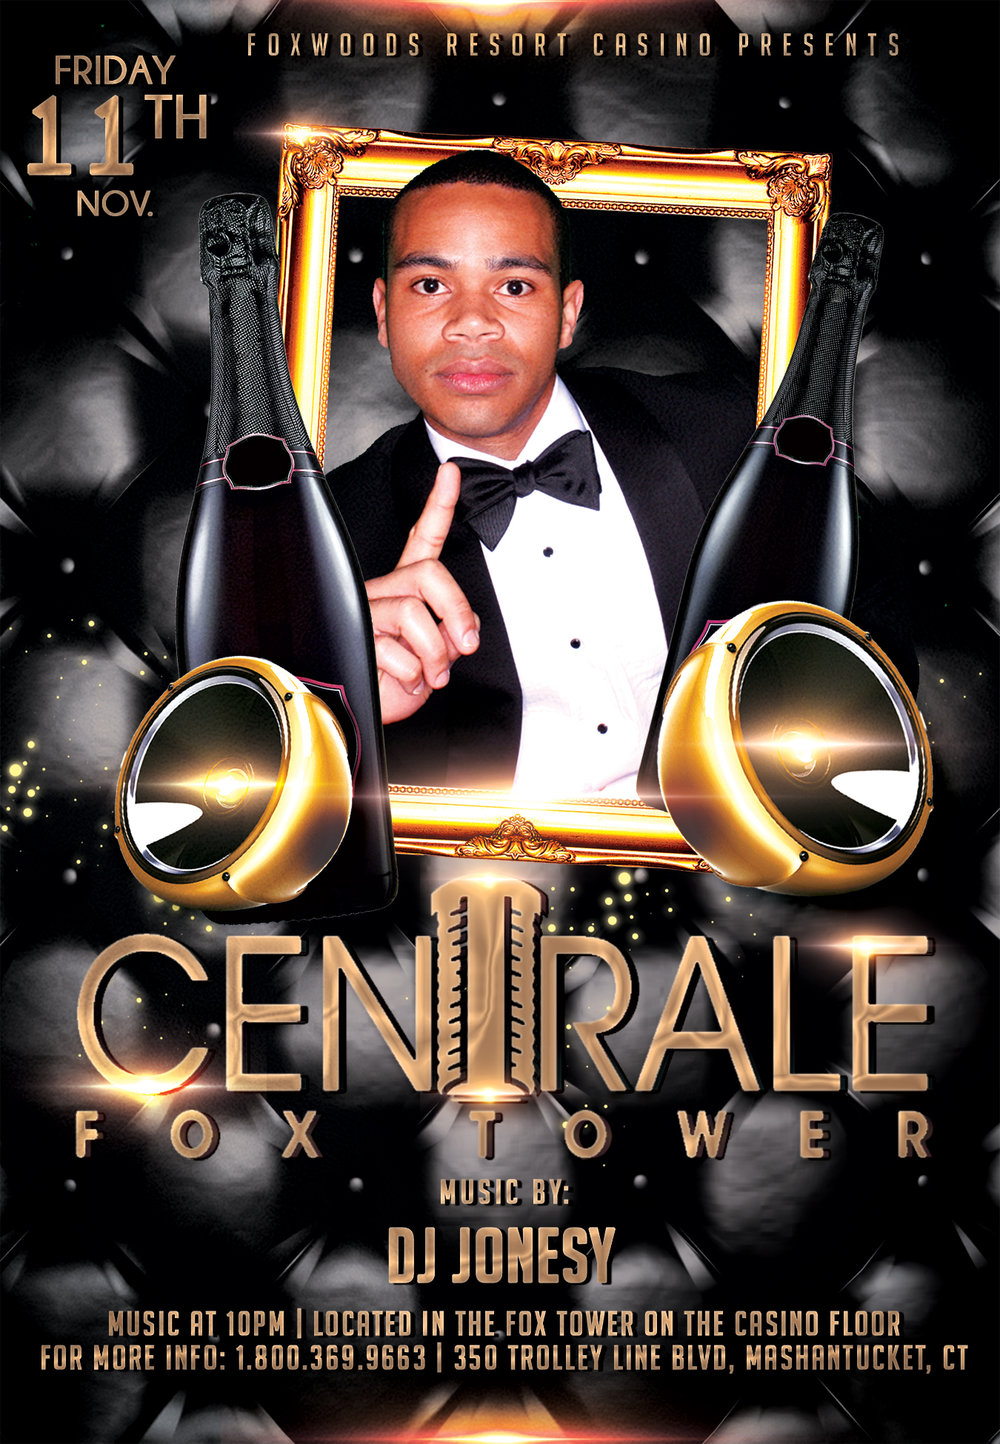 Friday, November 11th join me   Centrale Fox Tower   in   Foxwoods Resort Casino   for music by yours truly 10pm-close.